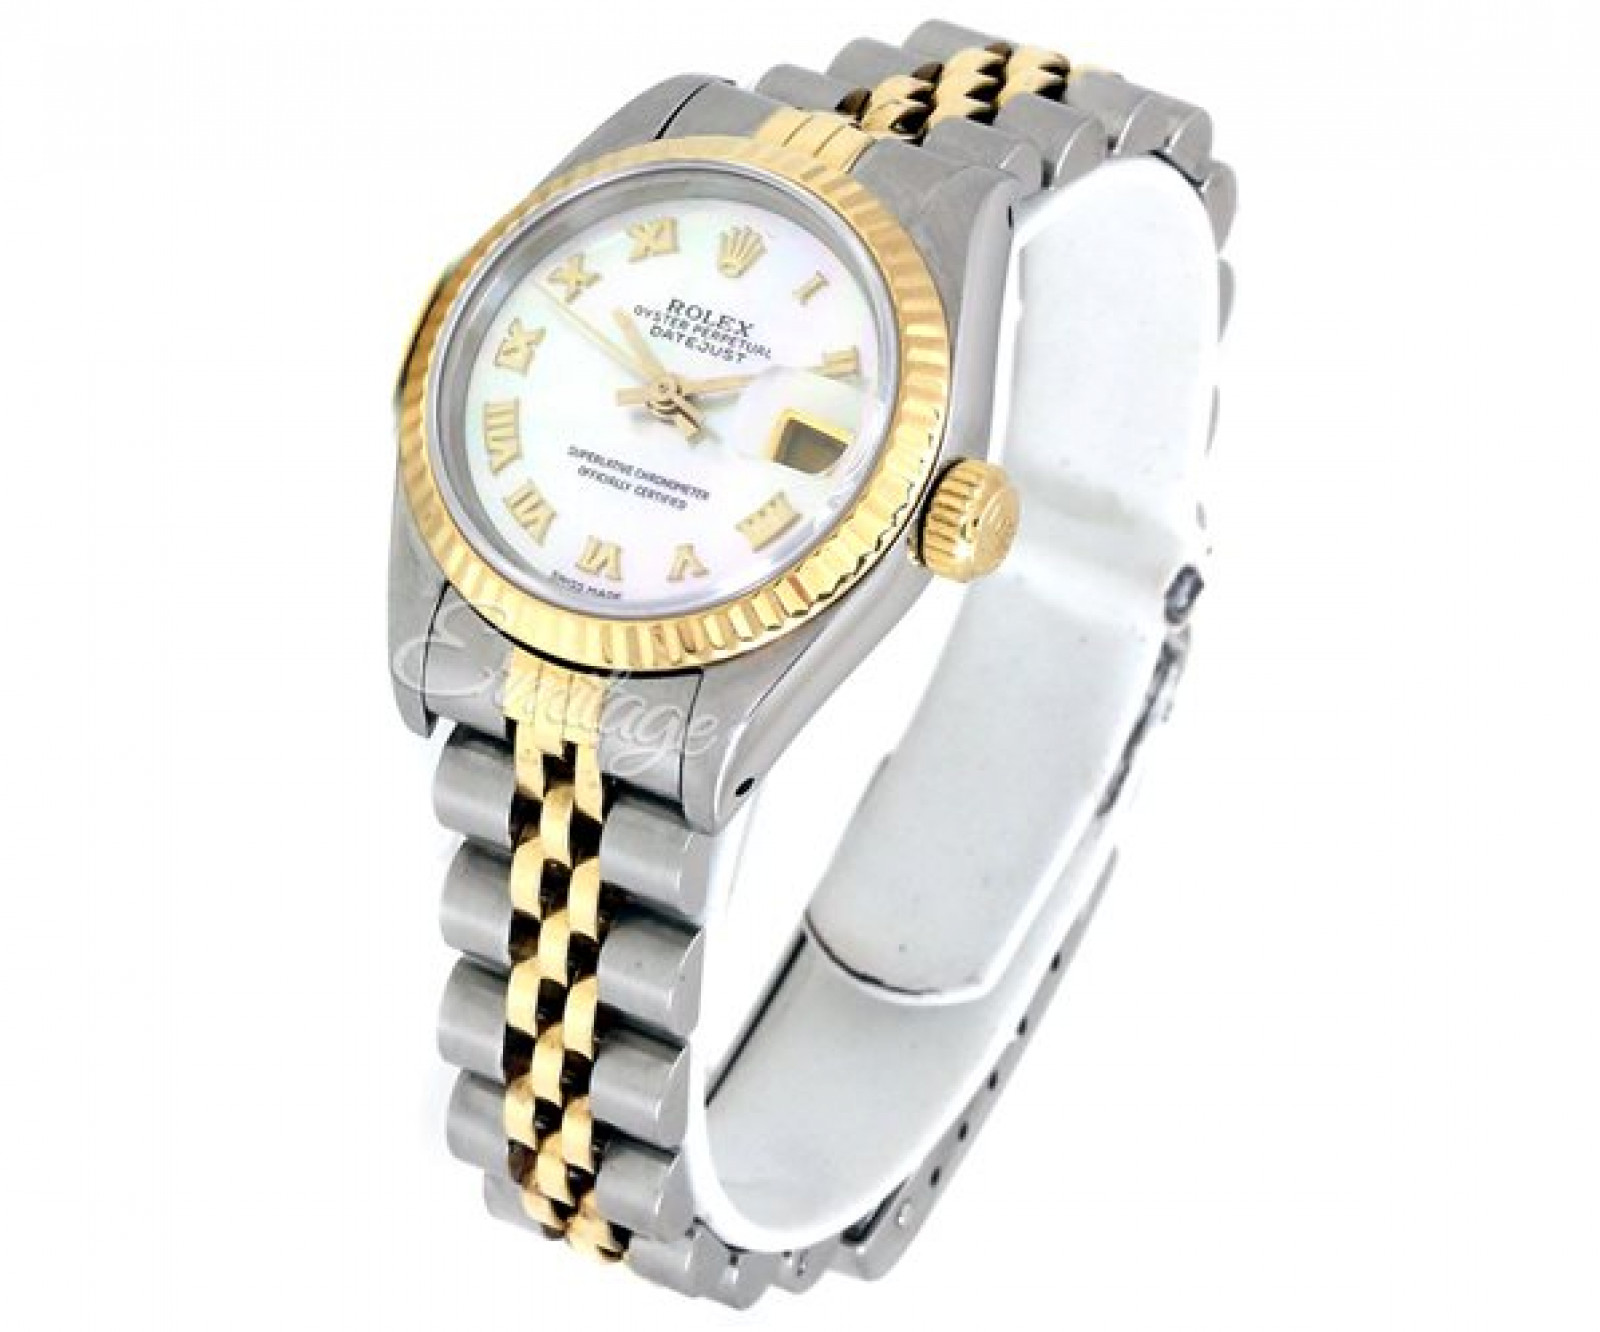 Rolex Datejust 69173 Gold & Steel with Ivory Dial & Roman Markers